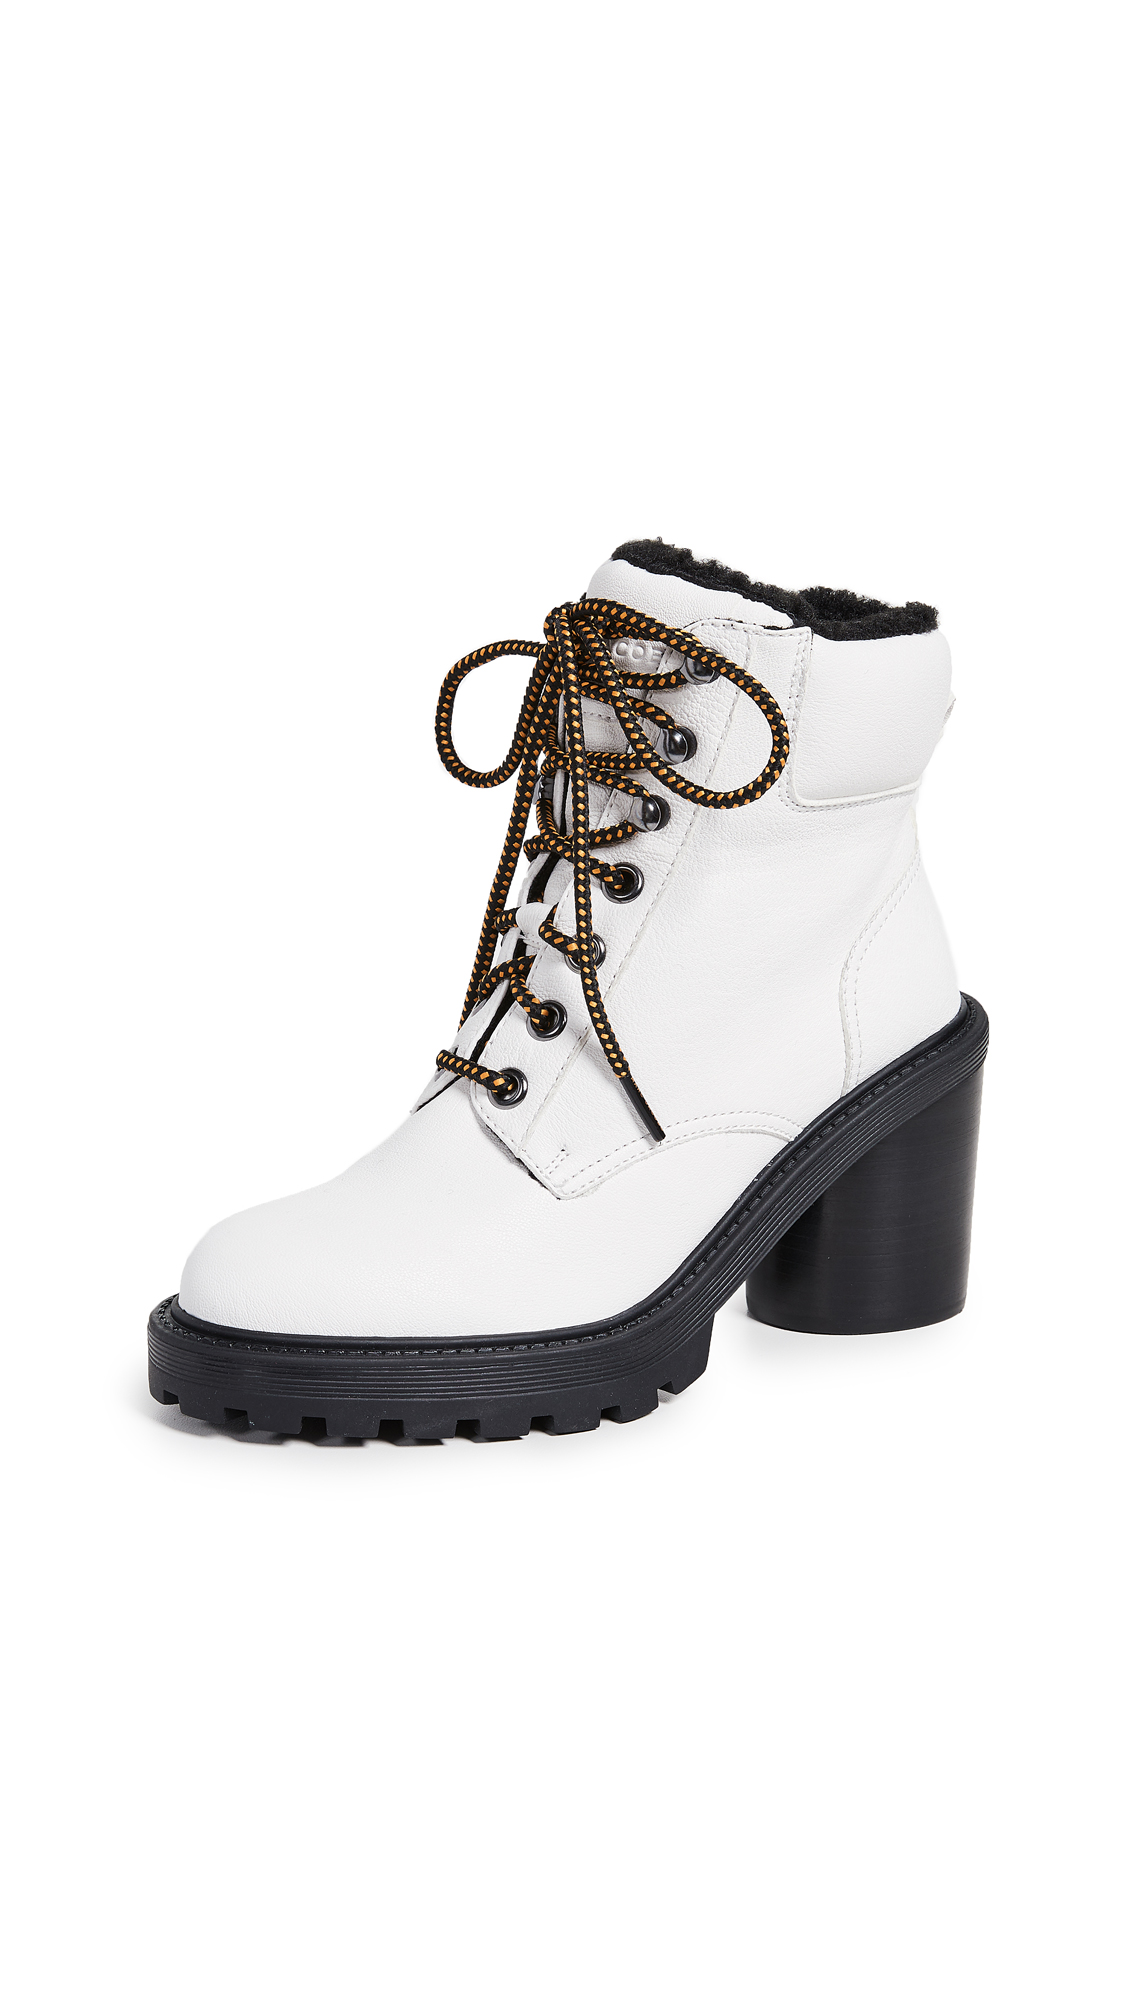 Marc Jacobs Crosby Hiking Boots - White